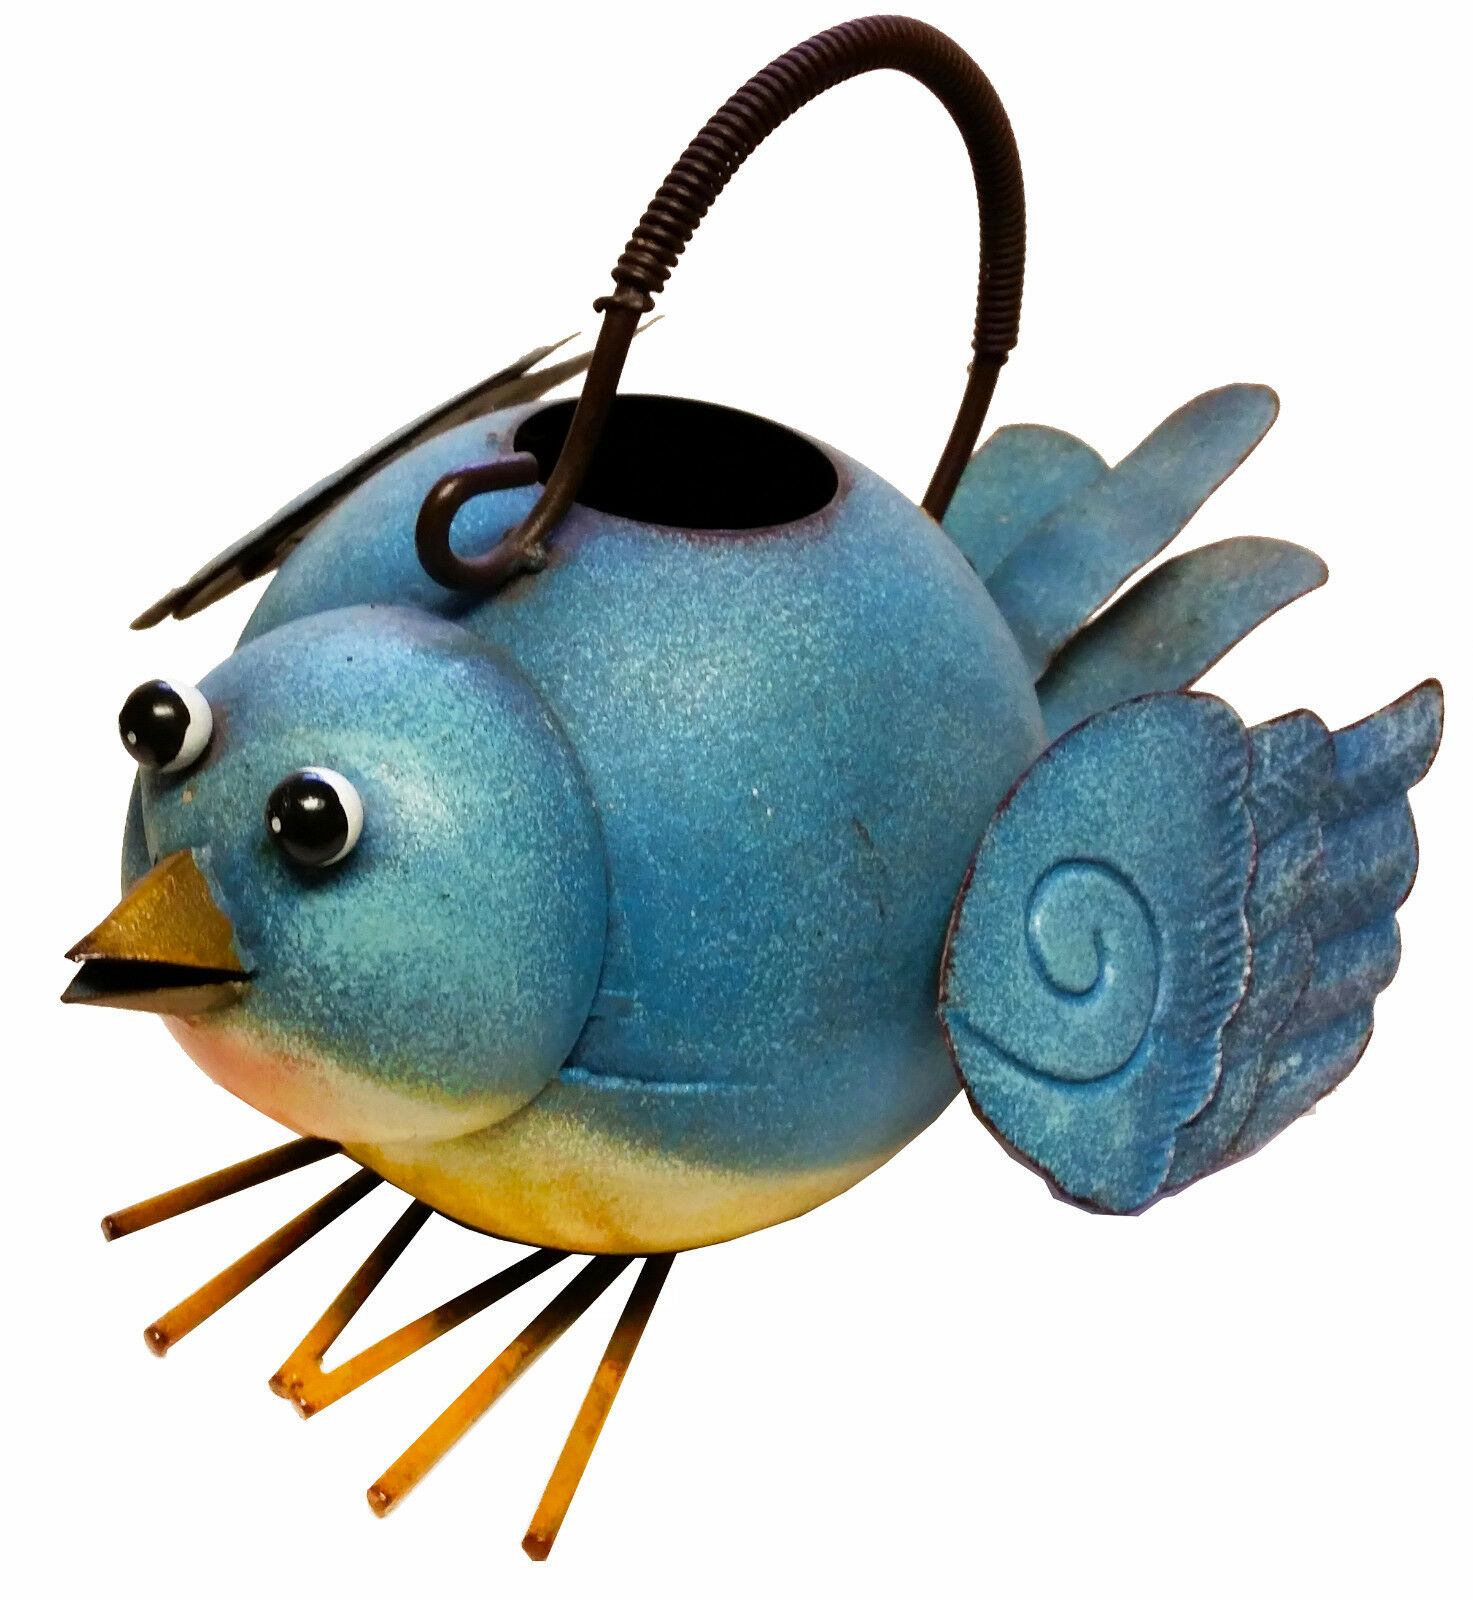 Decorative Bluebird Watering Can